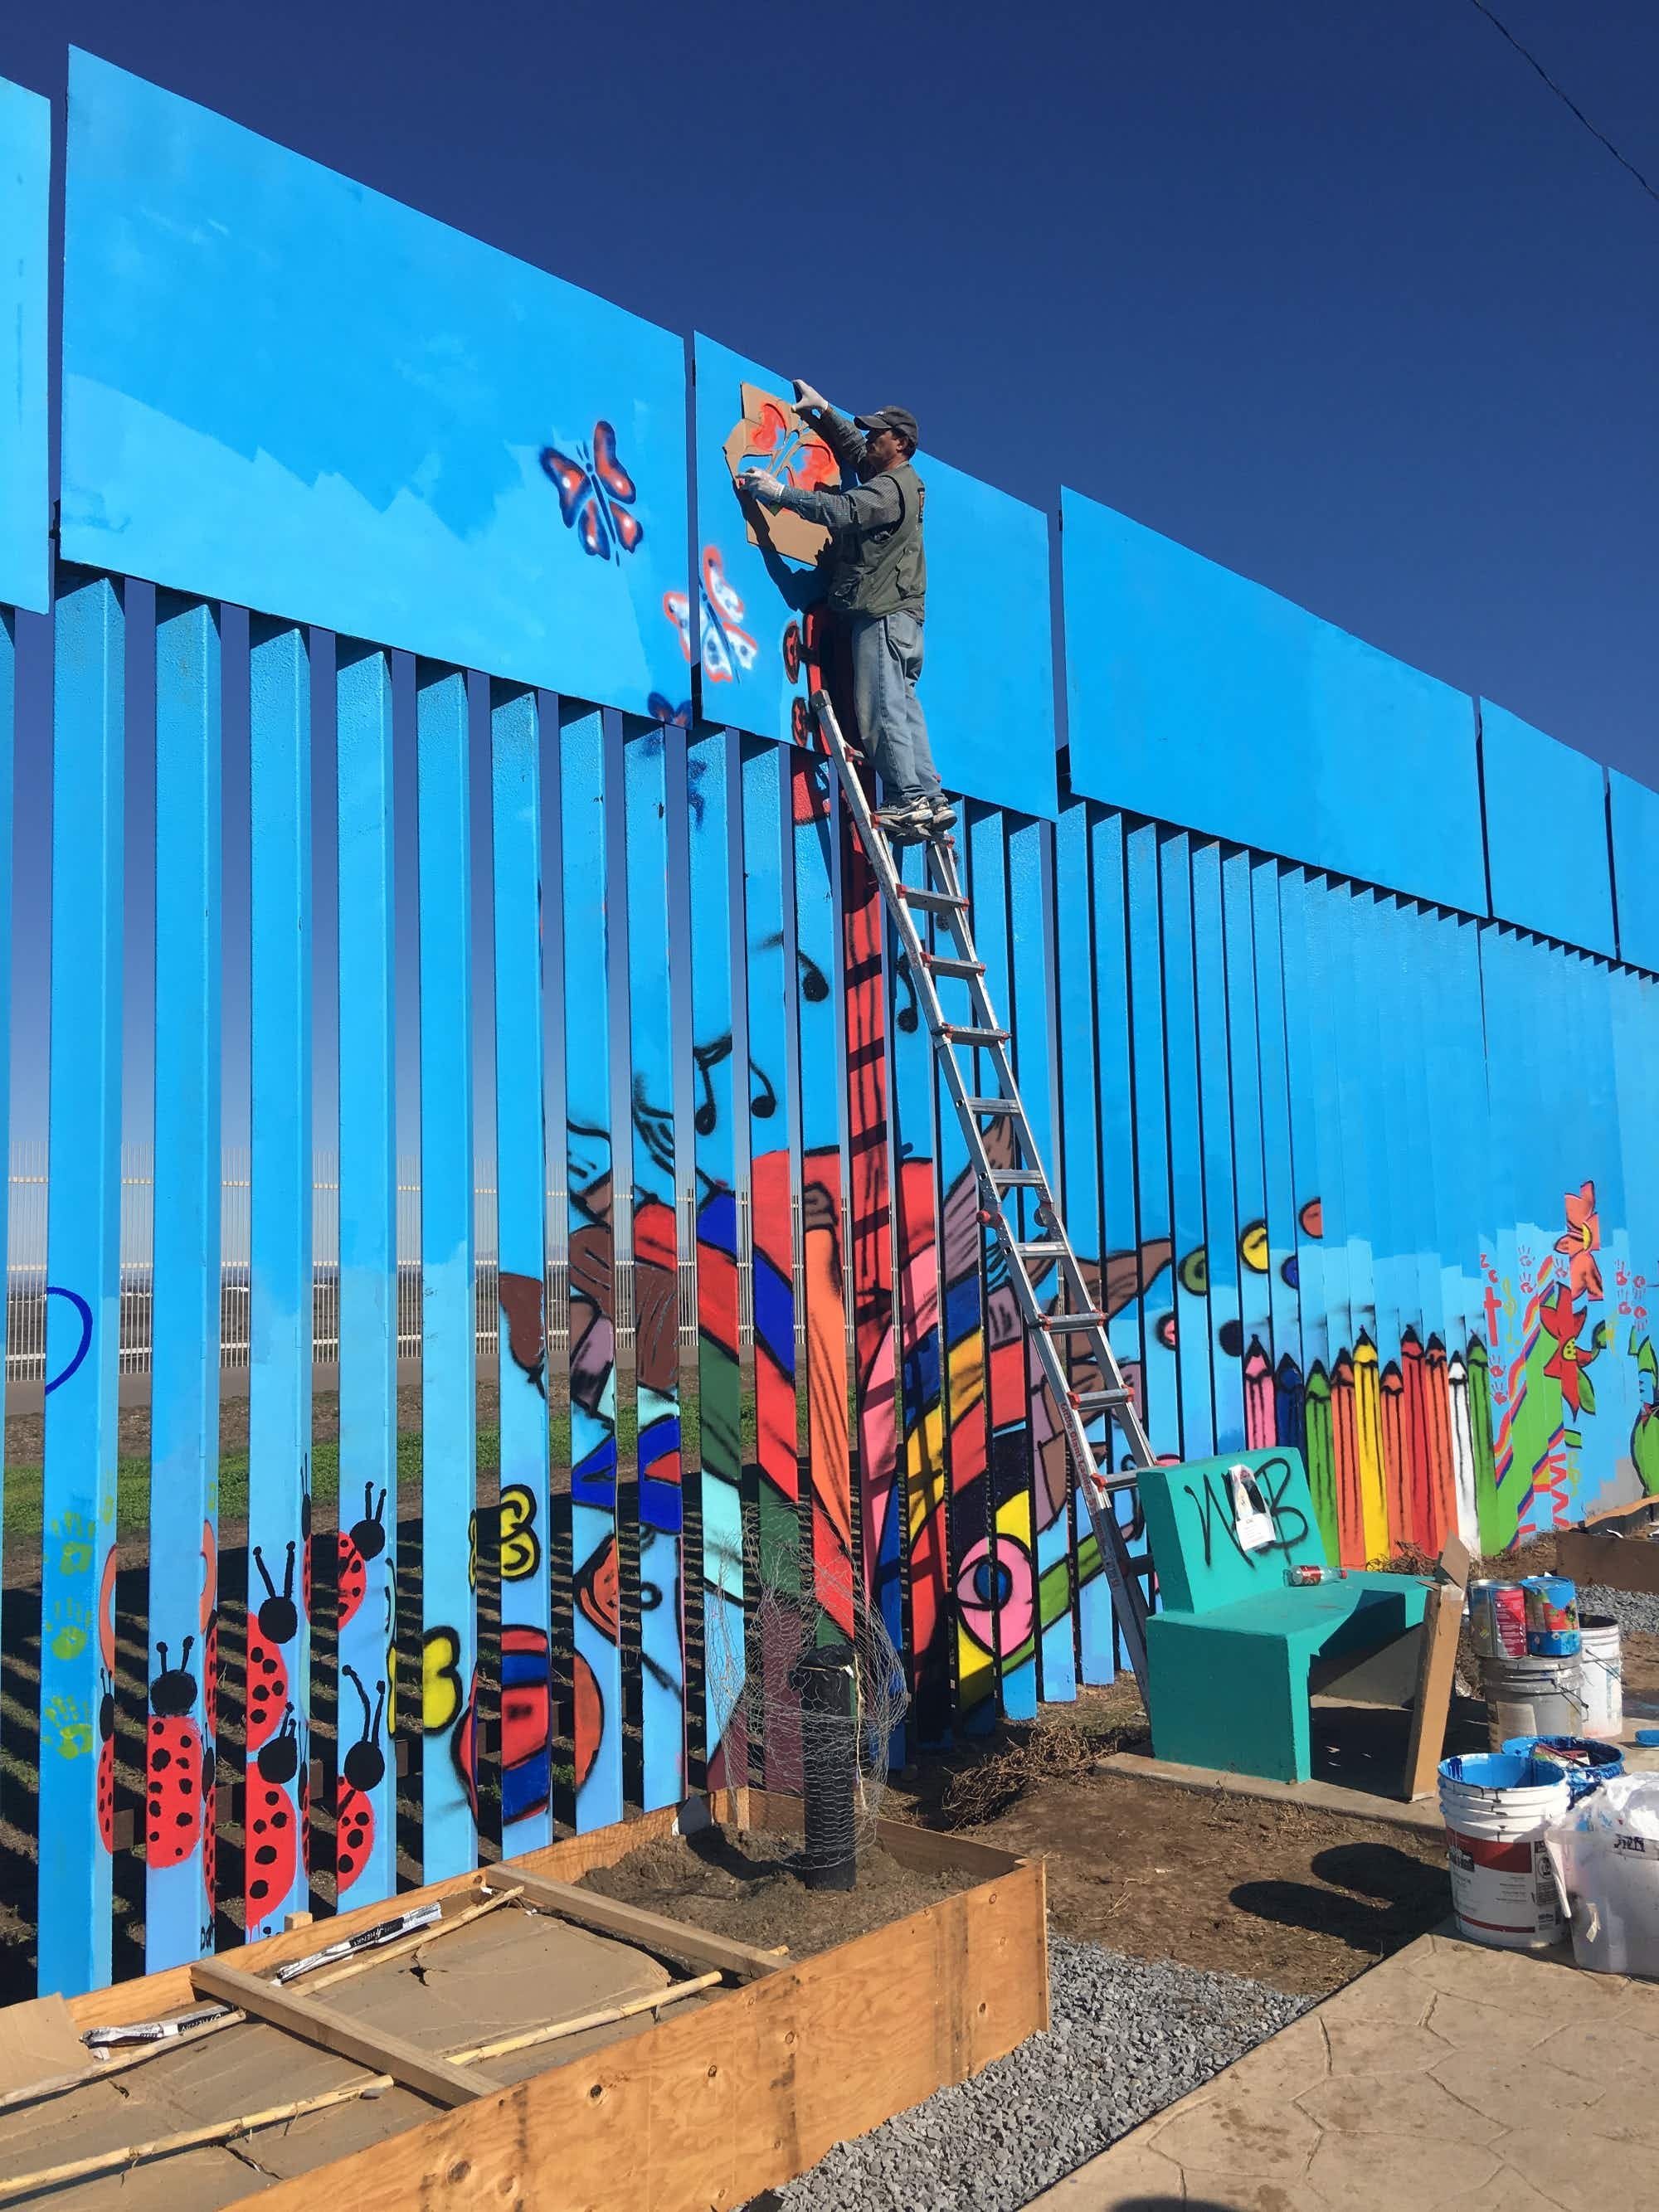 The world's longest mural is being painted on the US-Mexico border wall